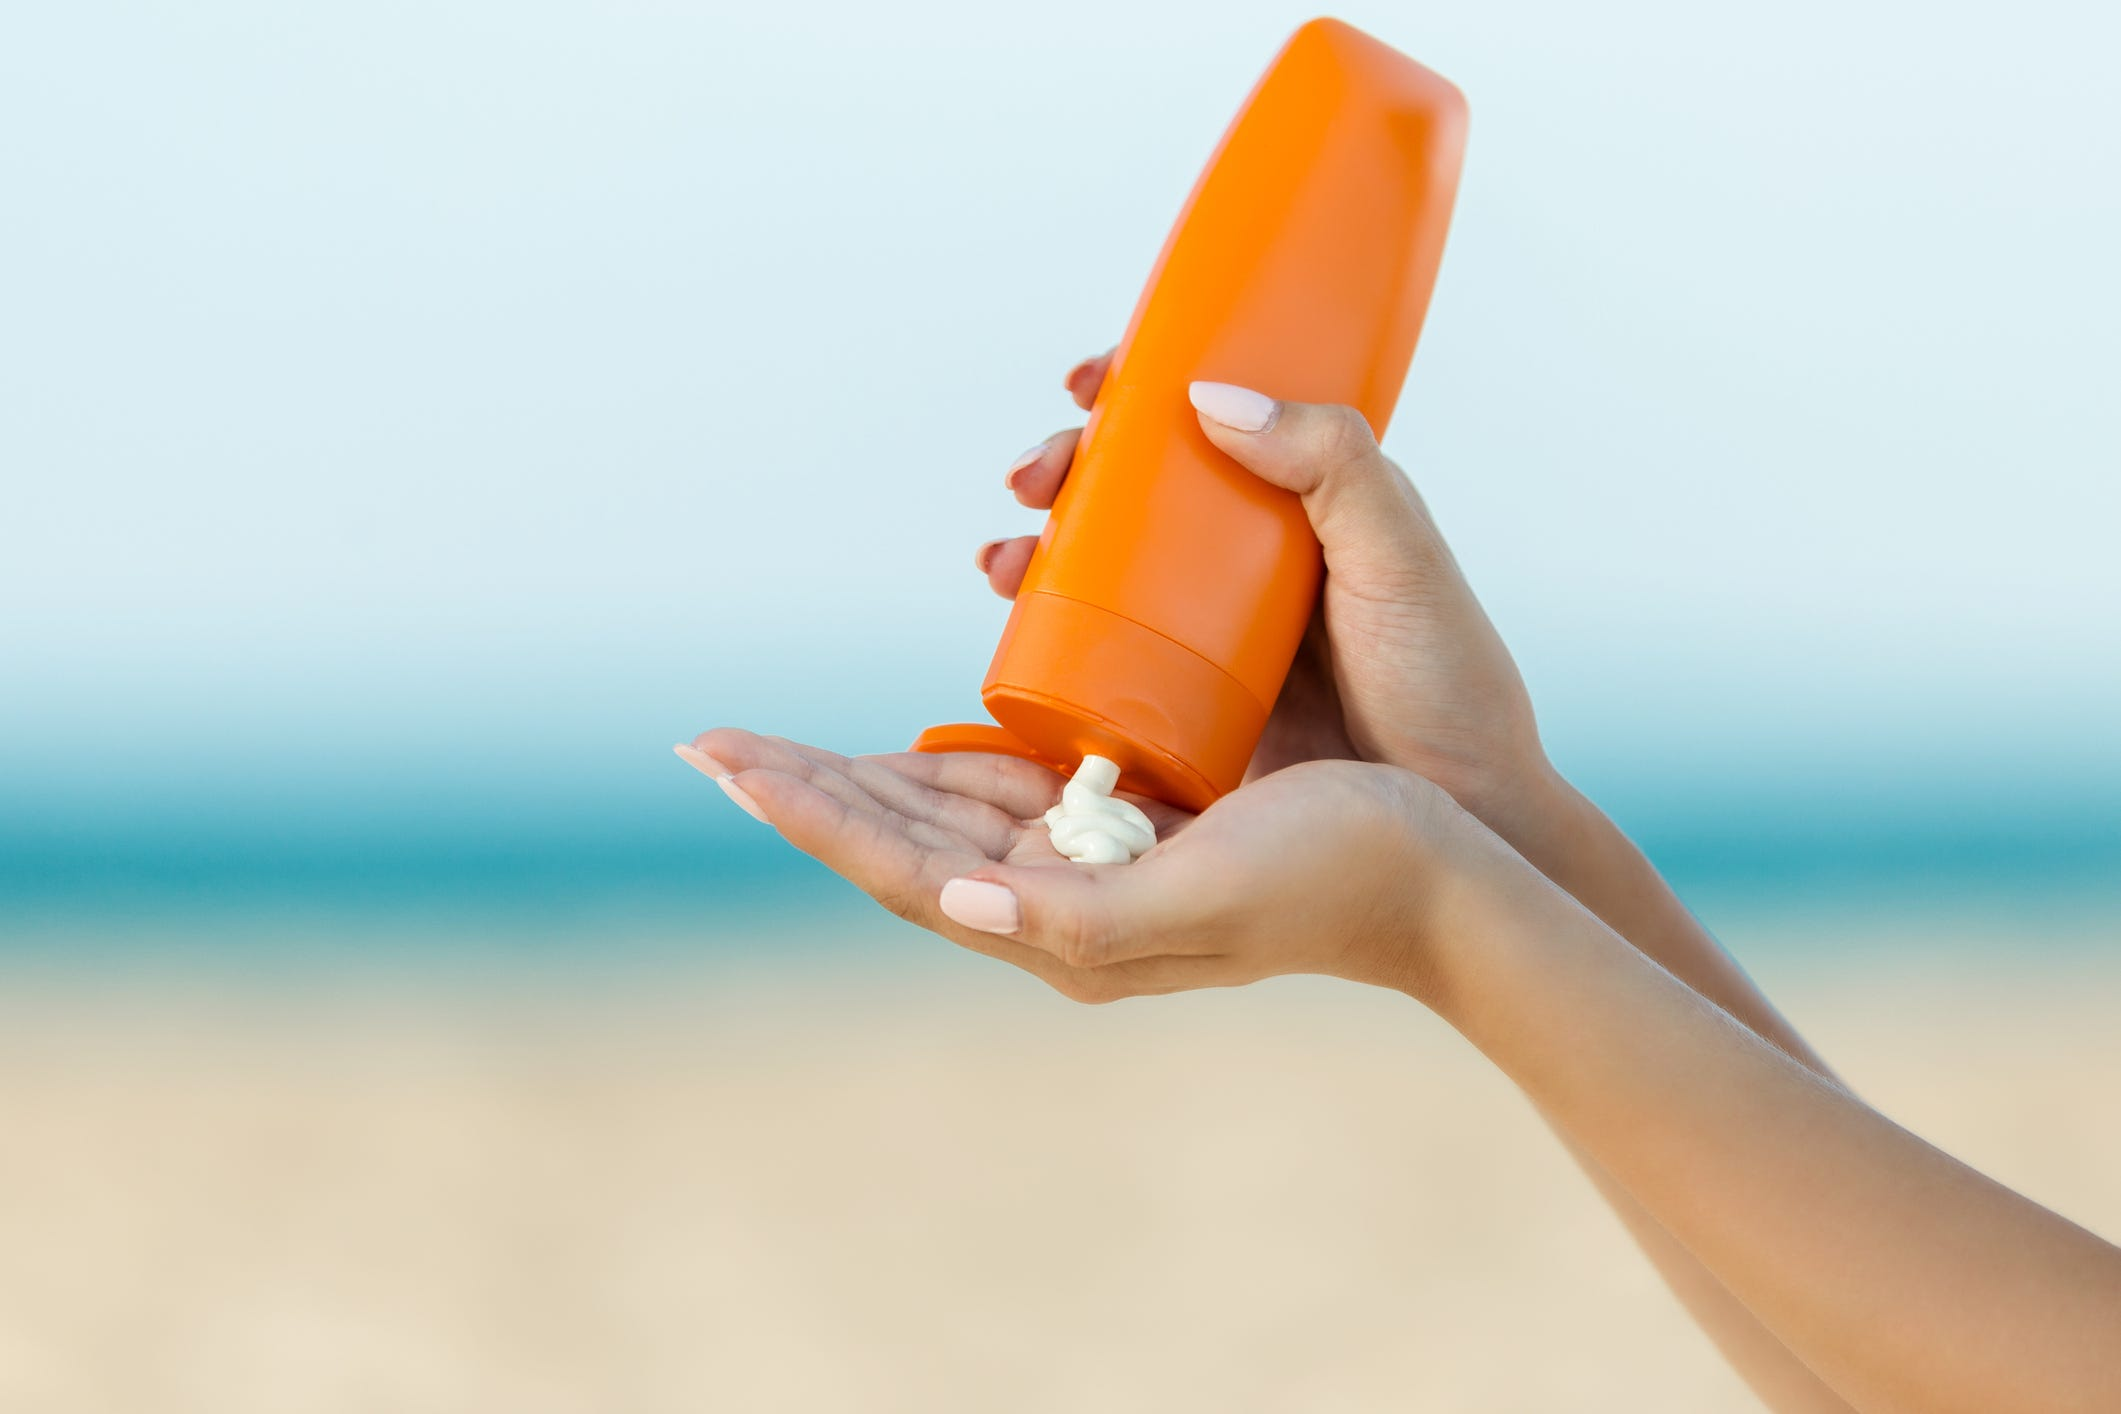 What travelers need to know about sunscreen bans